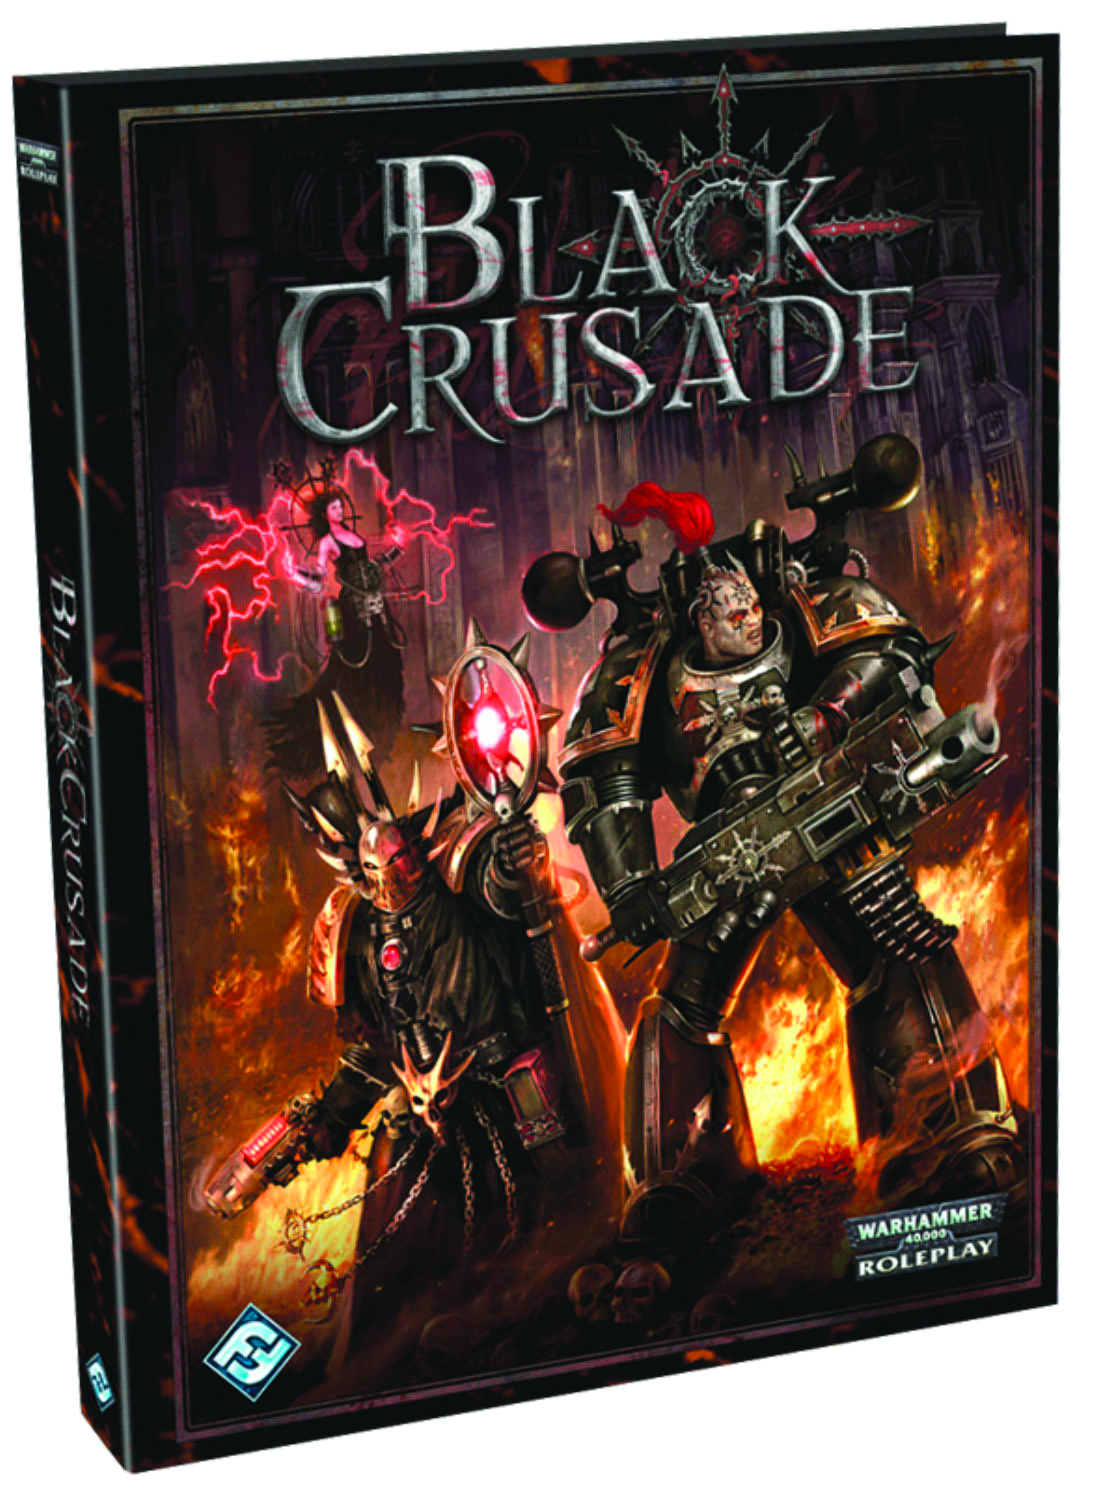 WH40K BLACK CRUSADE RPG CORE RULEBOOK